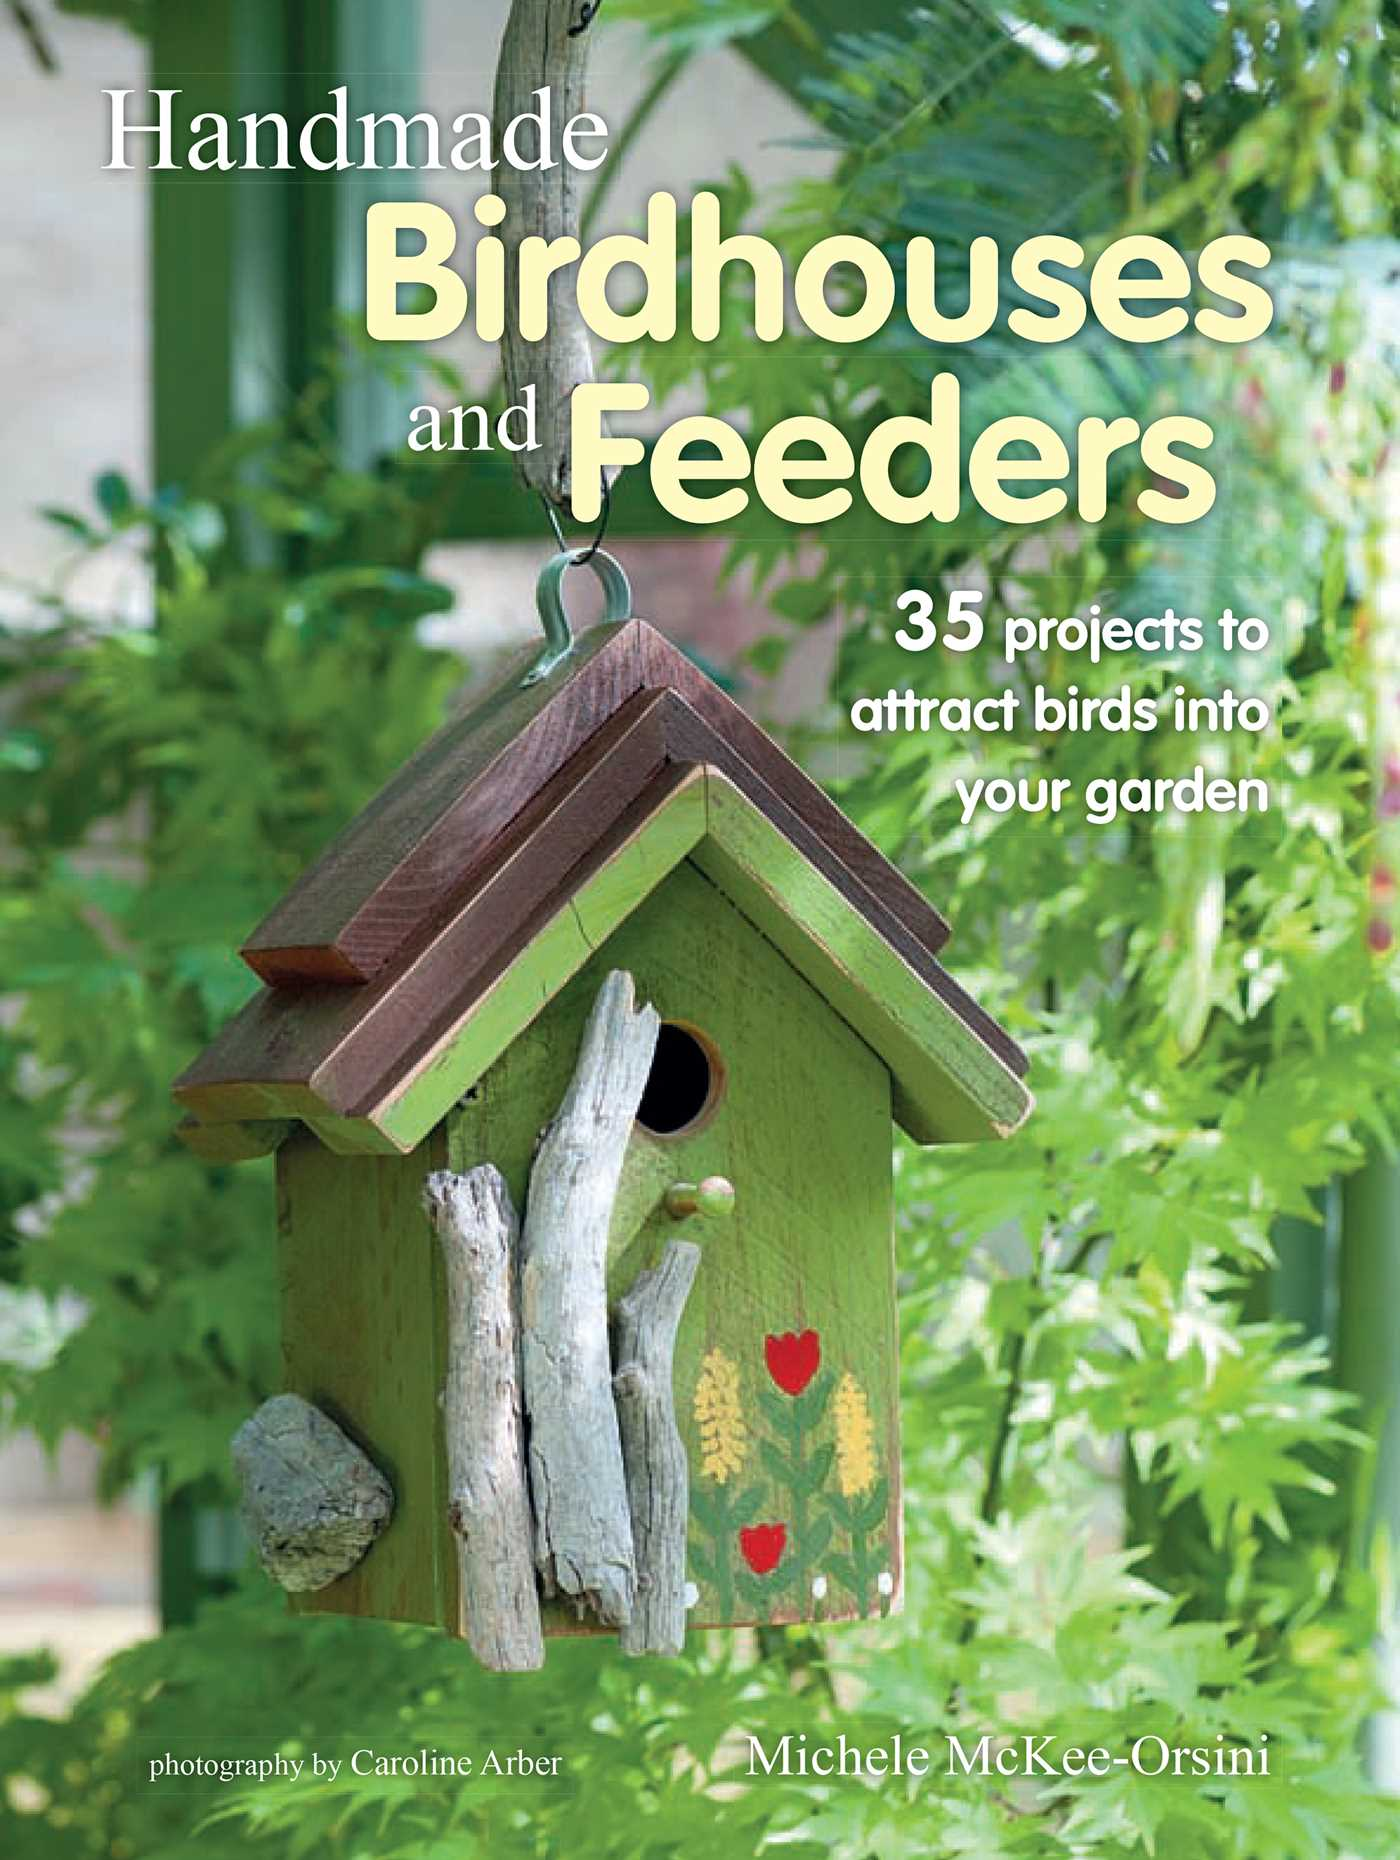 Handmade Birdhouses and Feeders Book  by Michele McKee